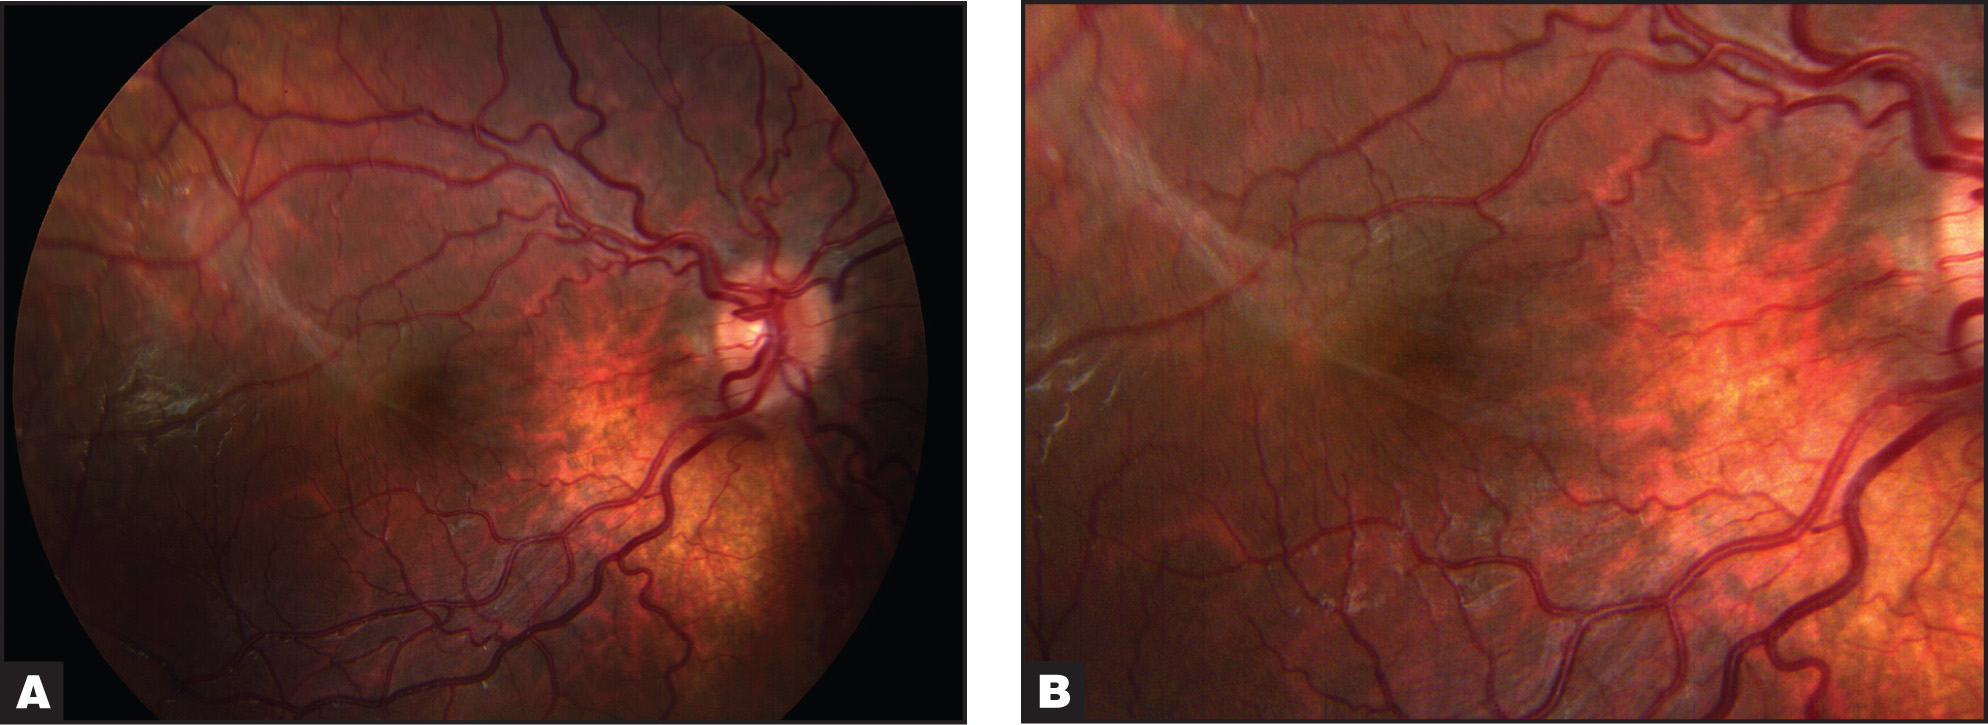 Color Fundus Photograph of Case 2. (A) Broad Epiretinal Membrane in the Right Eye. (B) Close-Up View of Perifoveal Tortuous Vessels.